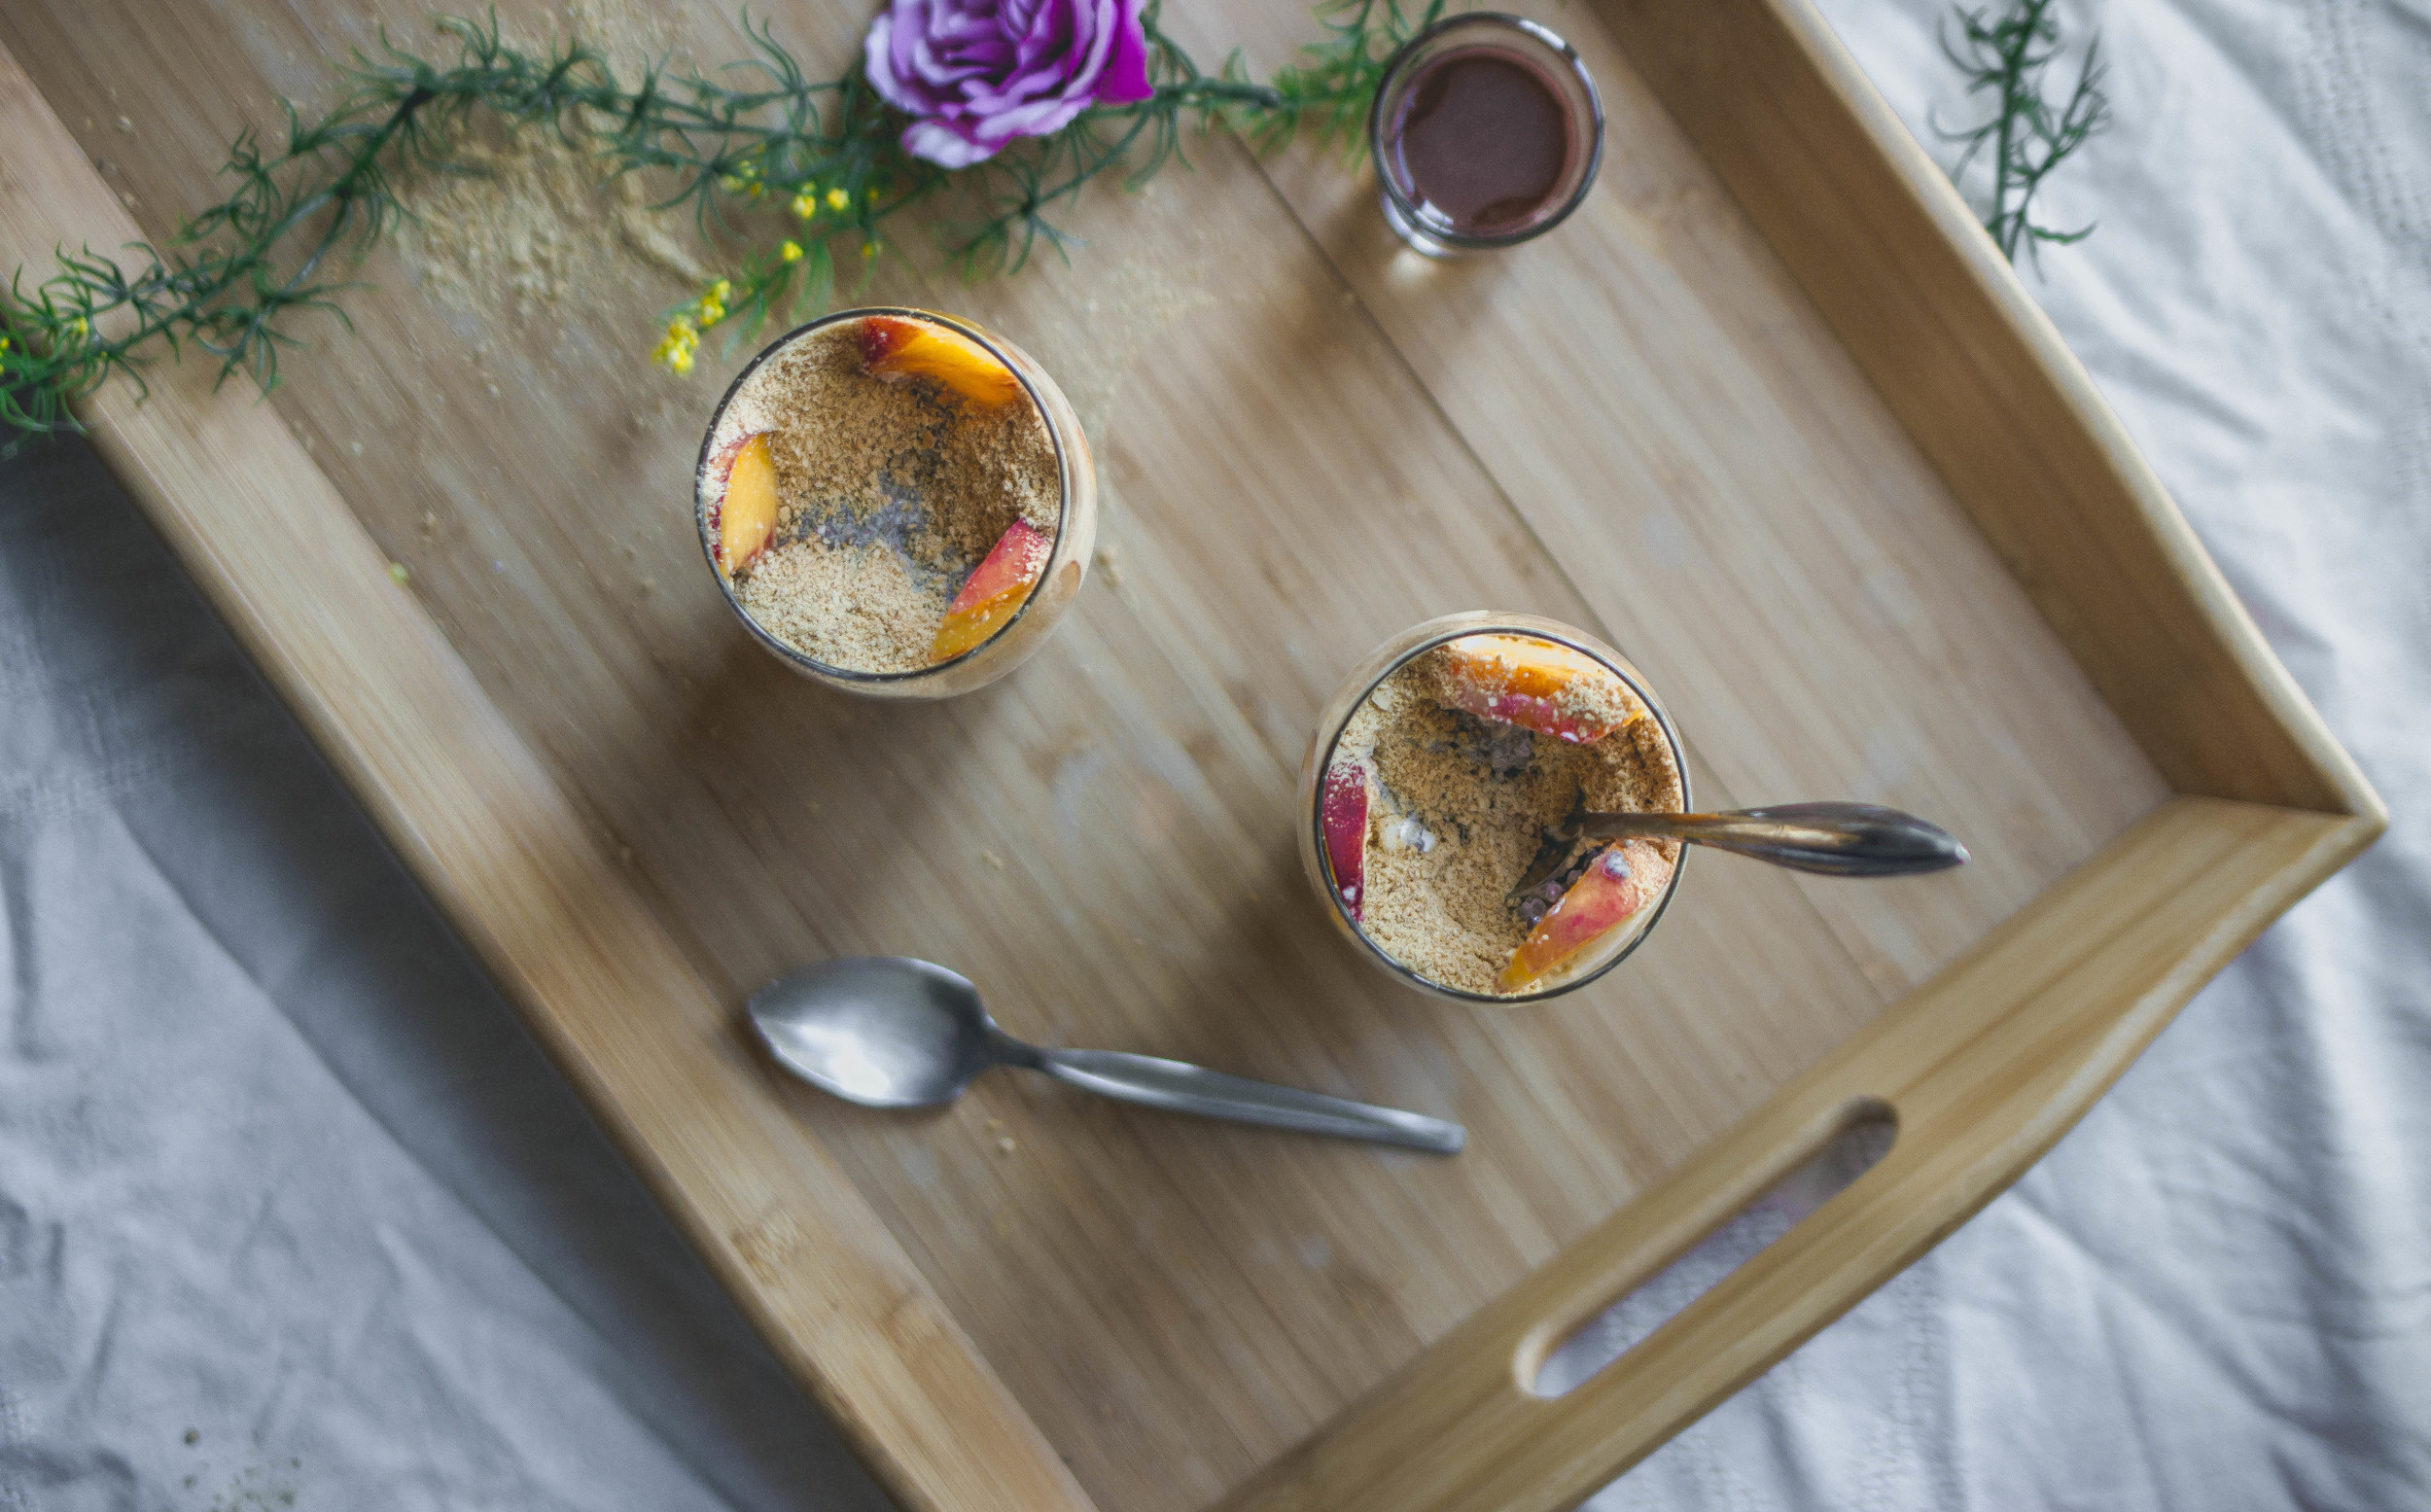 healthy dessert recipe ideas--chia peach cheesecake parfait with fudge | from scratch, mostly